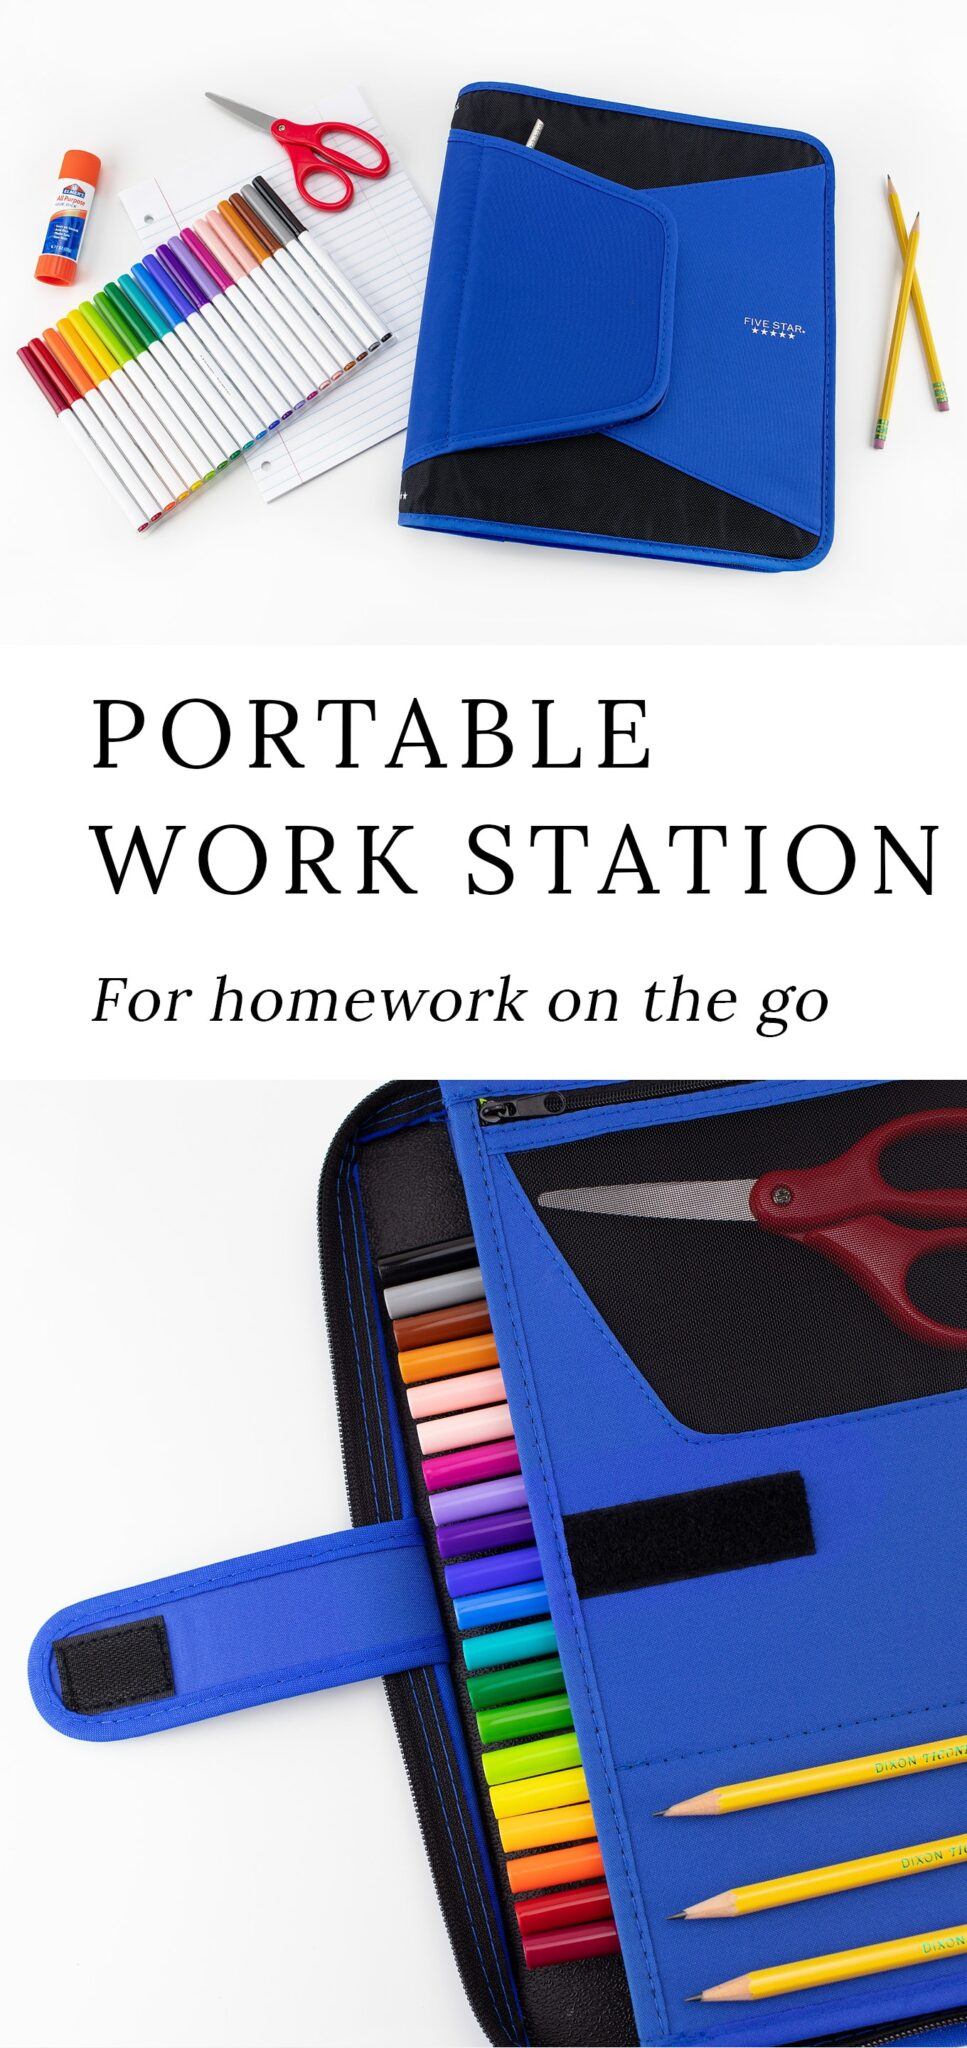 Help kids develop positive study skills, productive work habits, and increased school success by creating a designated homework station in your home. #homeworkstation #homework #studyskills #backtoschool #homeworkstationideas #kidsstudystation #studyspaceideas #homeworknook #education #homeschoolroom via @firefliesandmudpies